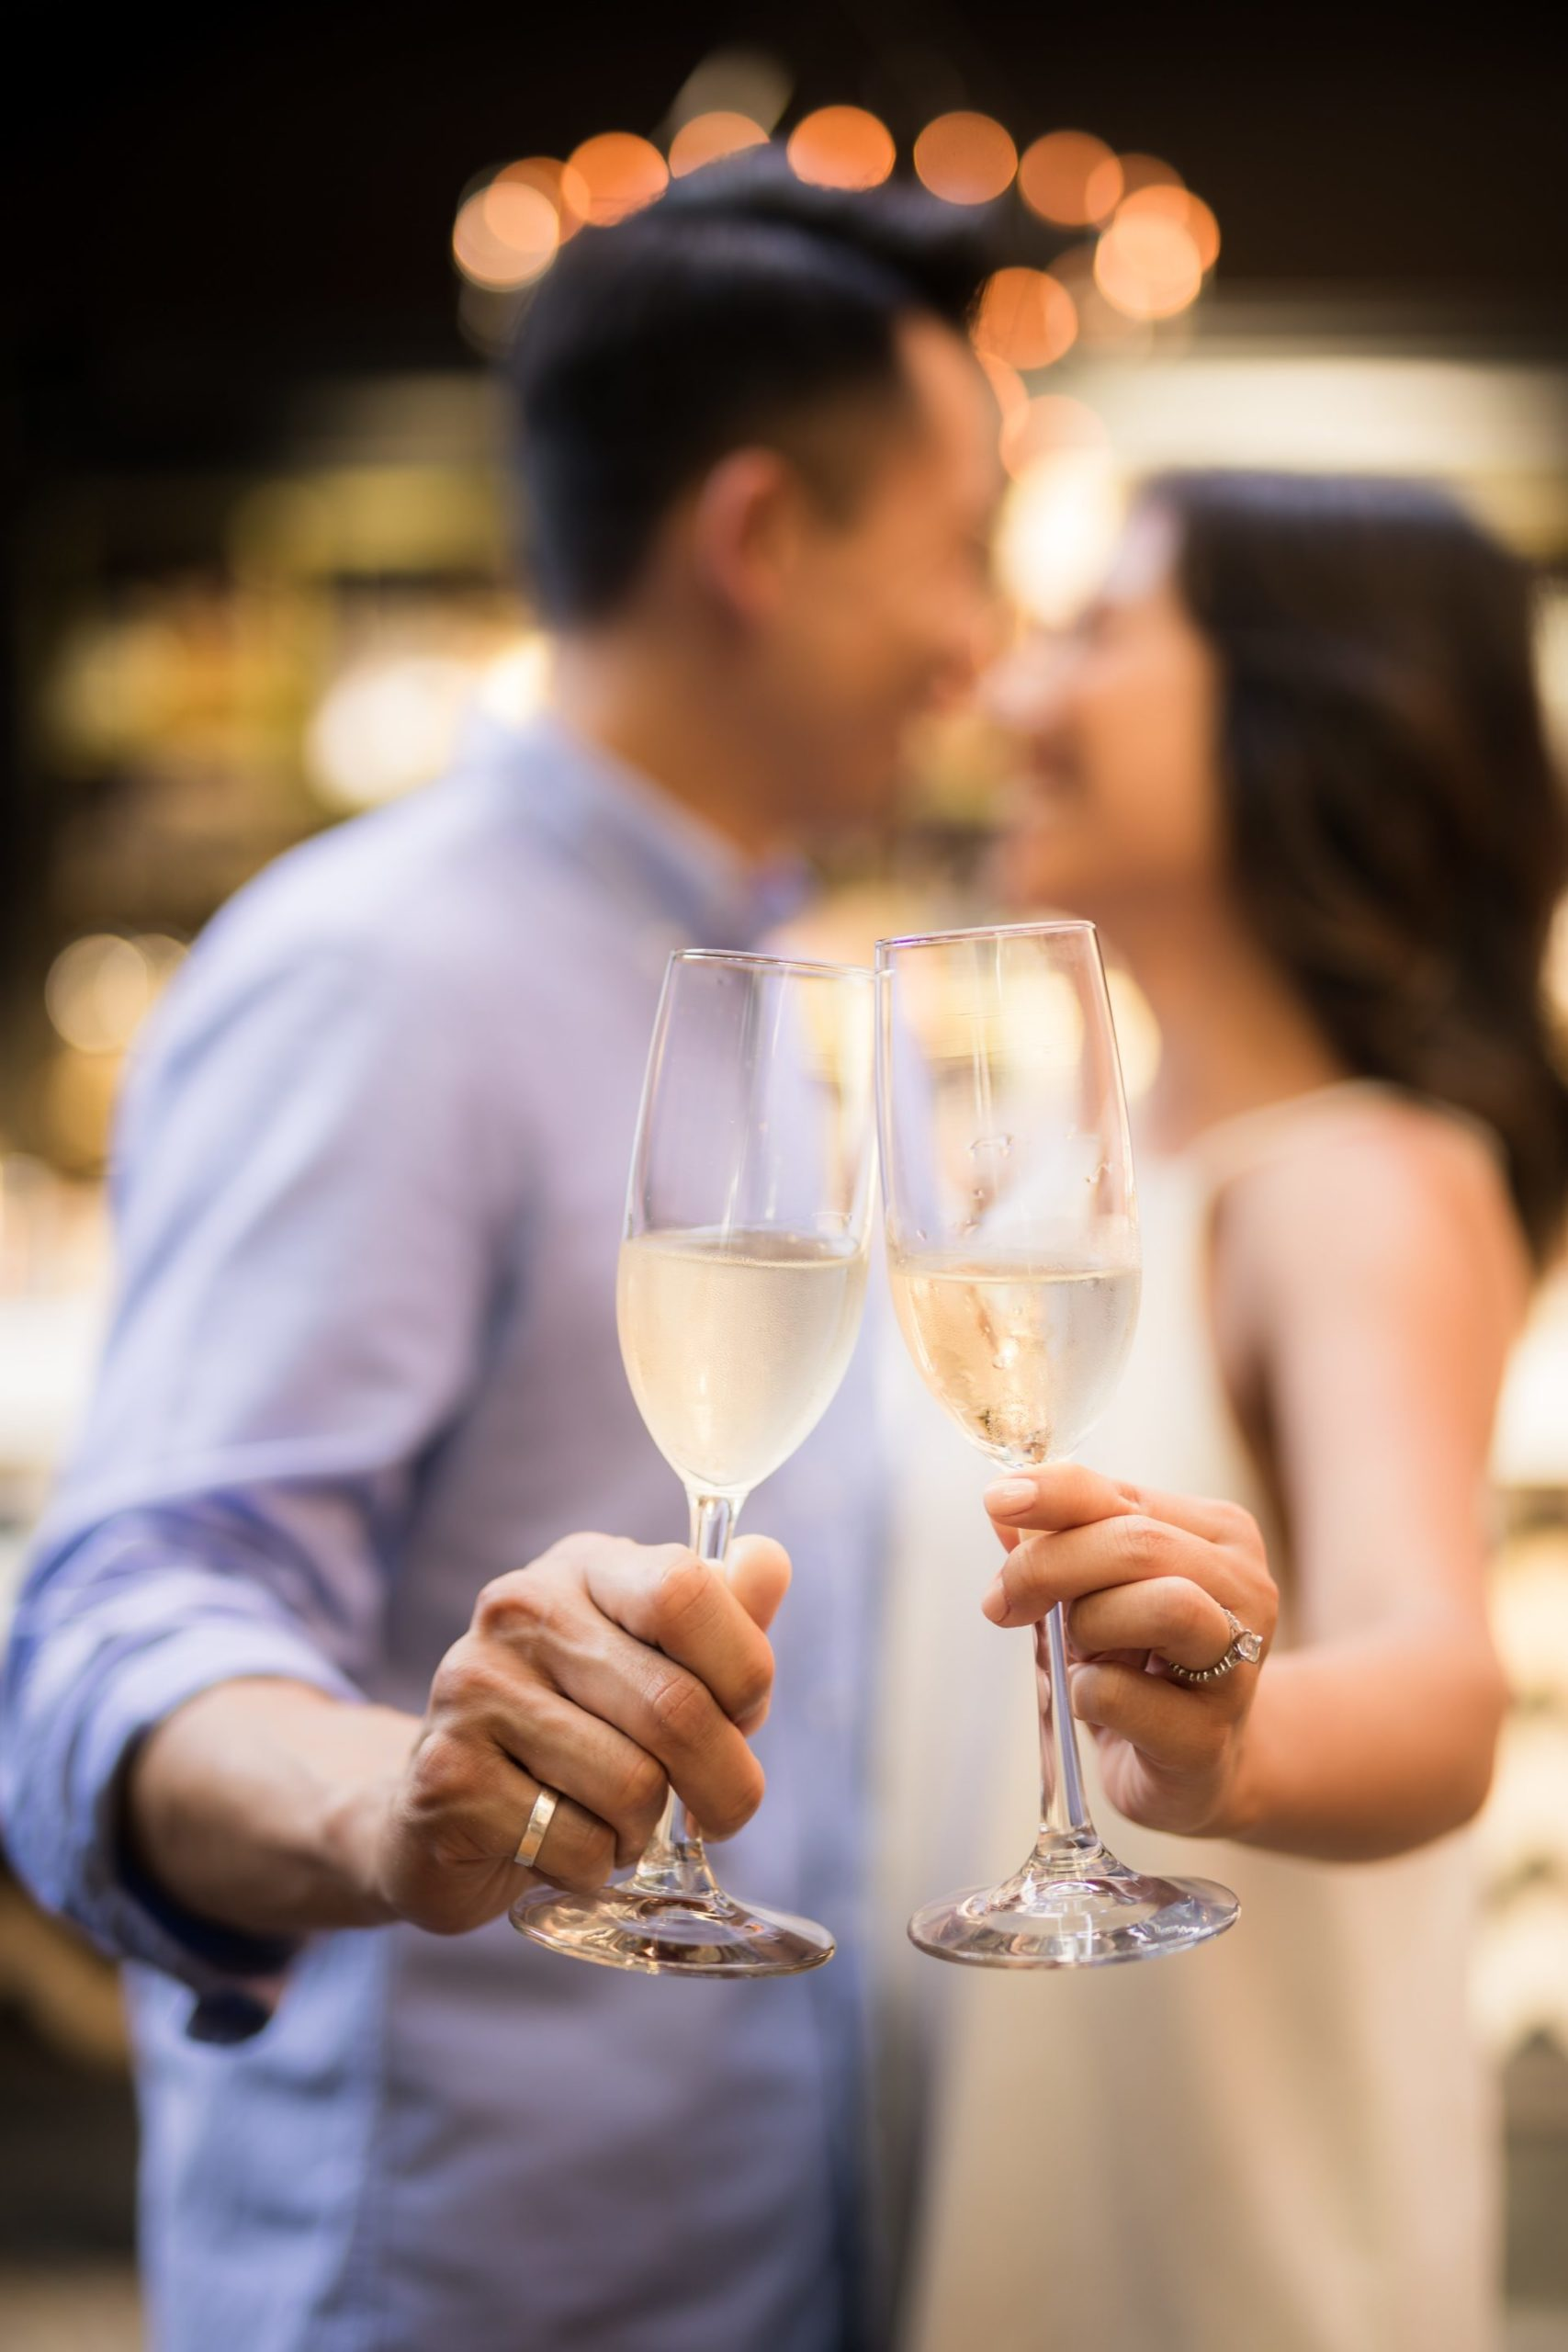 MTN Matchmaking Helps Singles Find Lasting Love With In-Person and Virtual Services